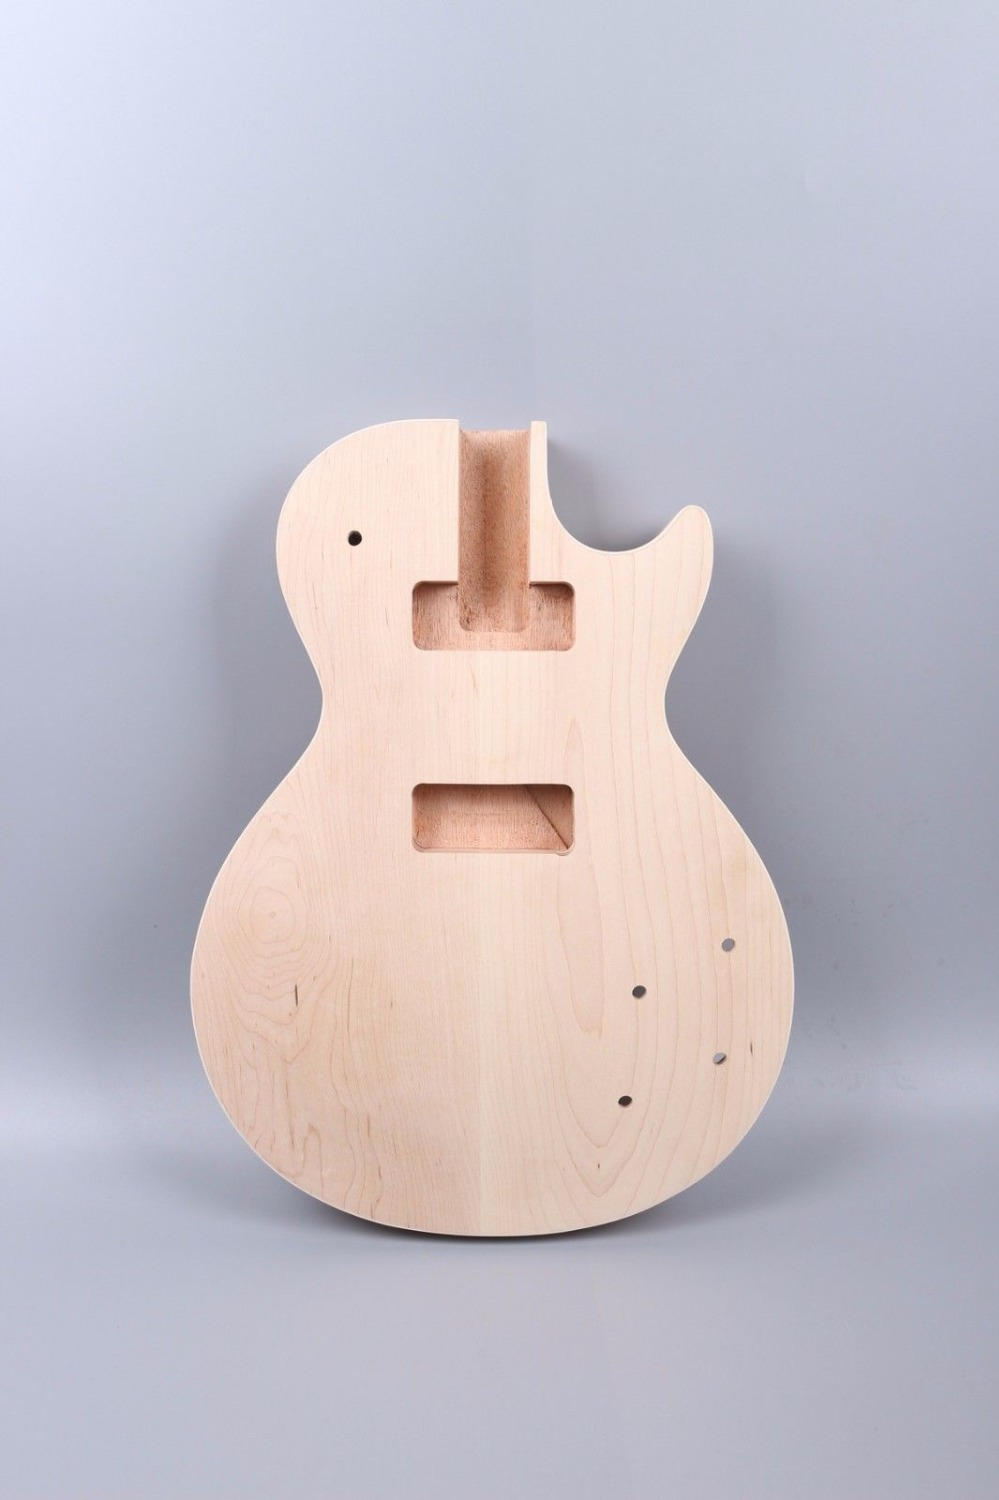 New Electric Guitar Body Replacement Mahogany Wood Guitar Body Electric Guitar Parts Accessory P90 Pickup